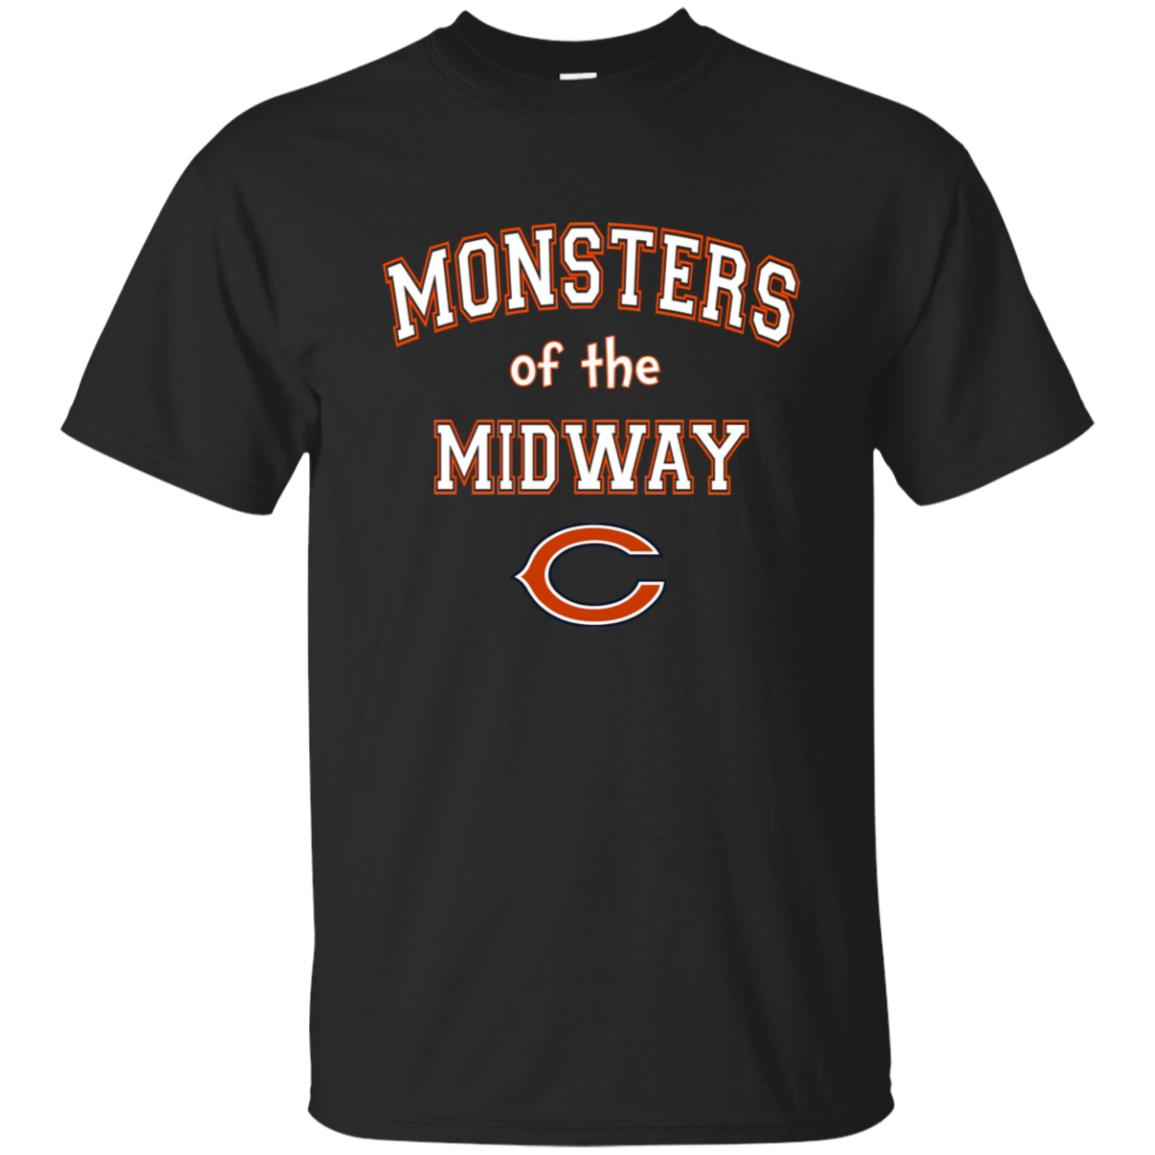 online retailer c2141 0a71e Monsters Of The Midway Chicago Bears